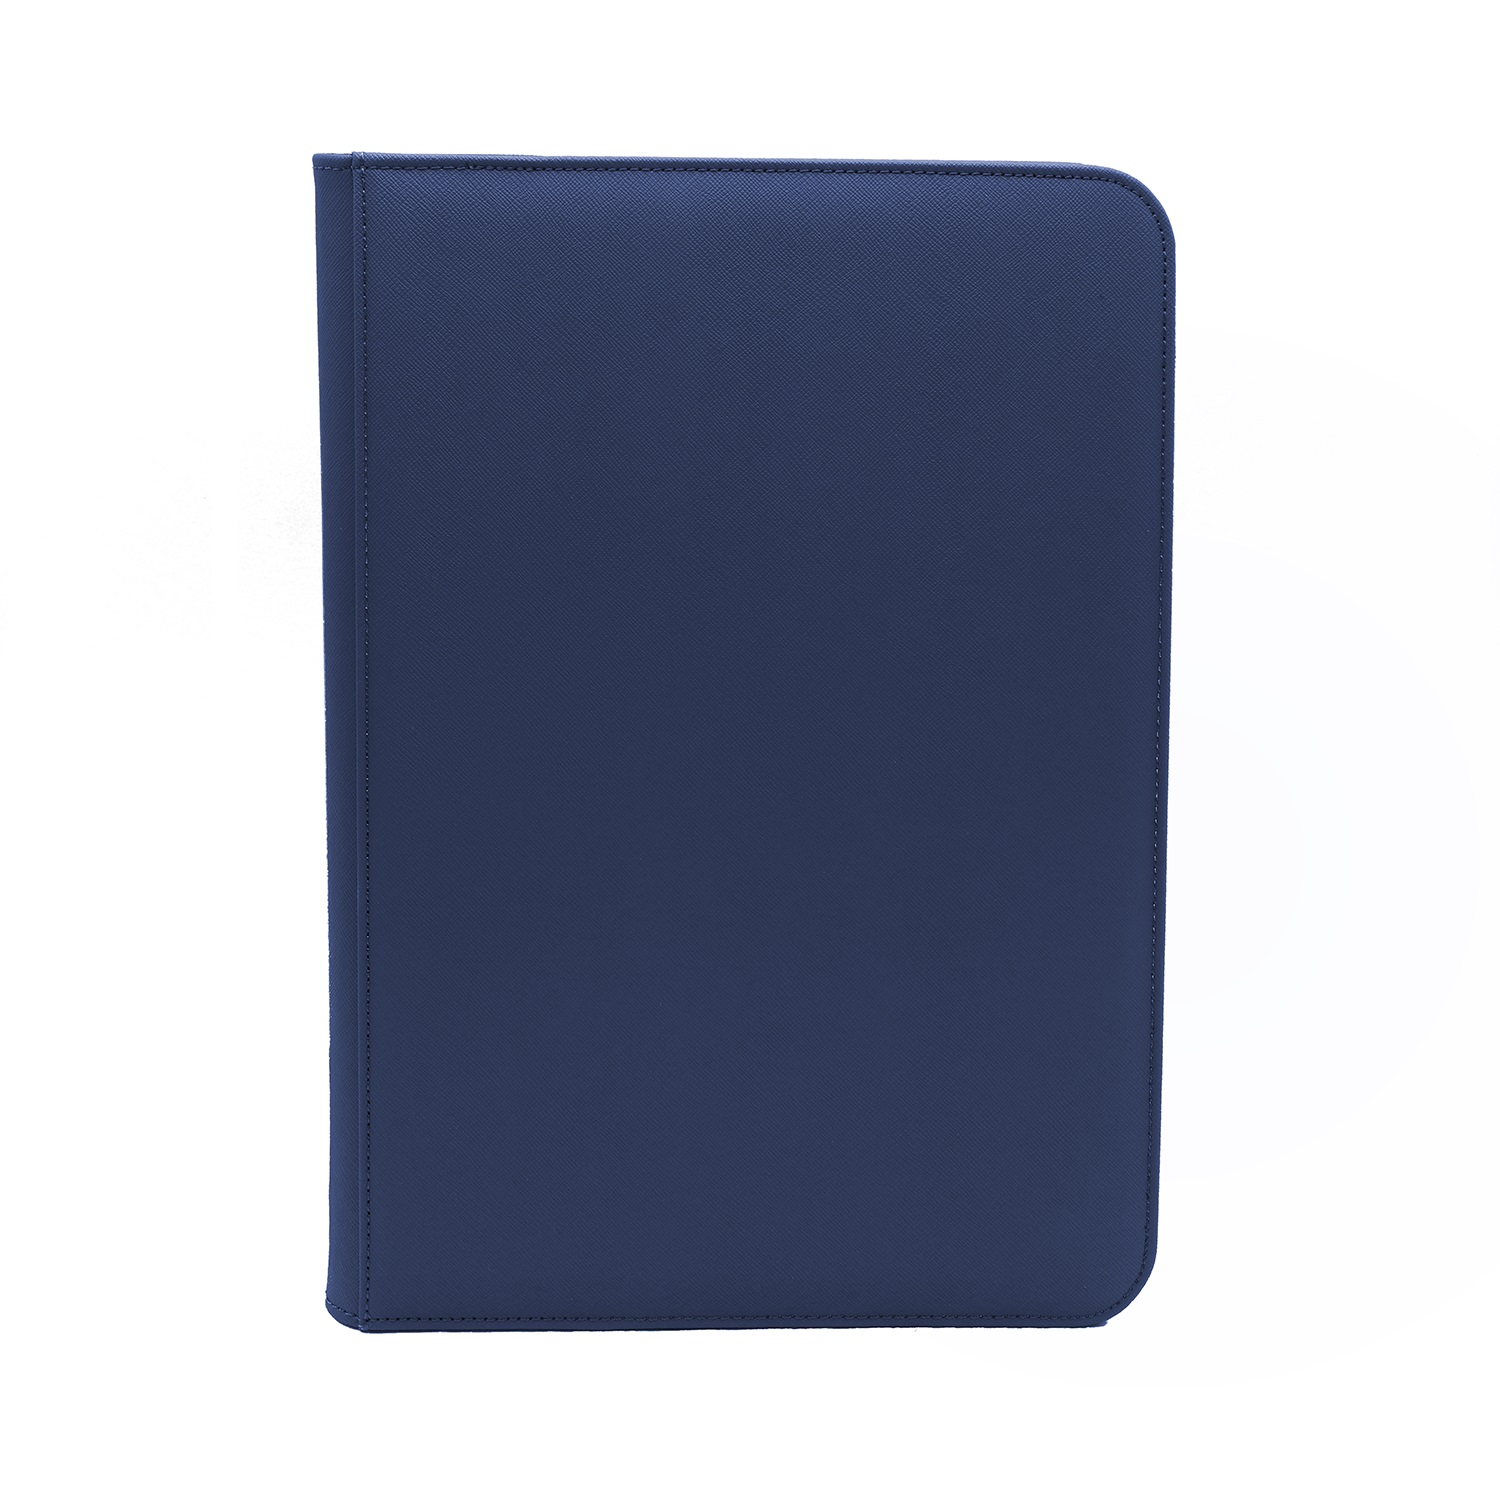 Dex Protection - Dex Zipper Binder 9 - Dark Blue